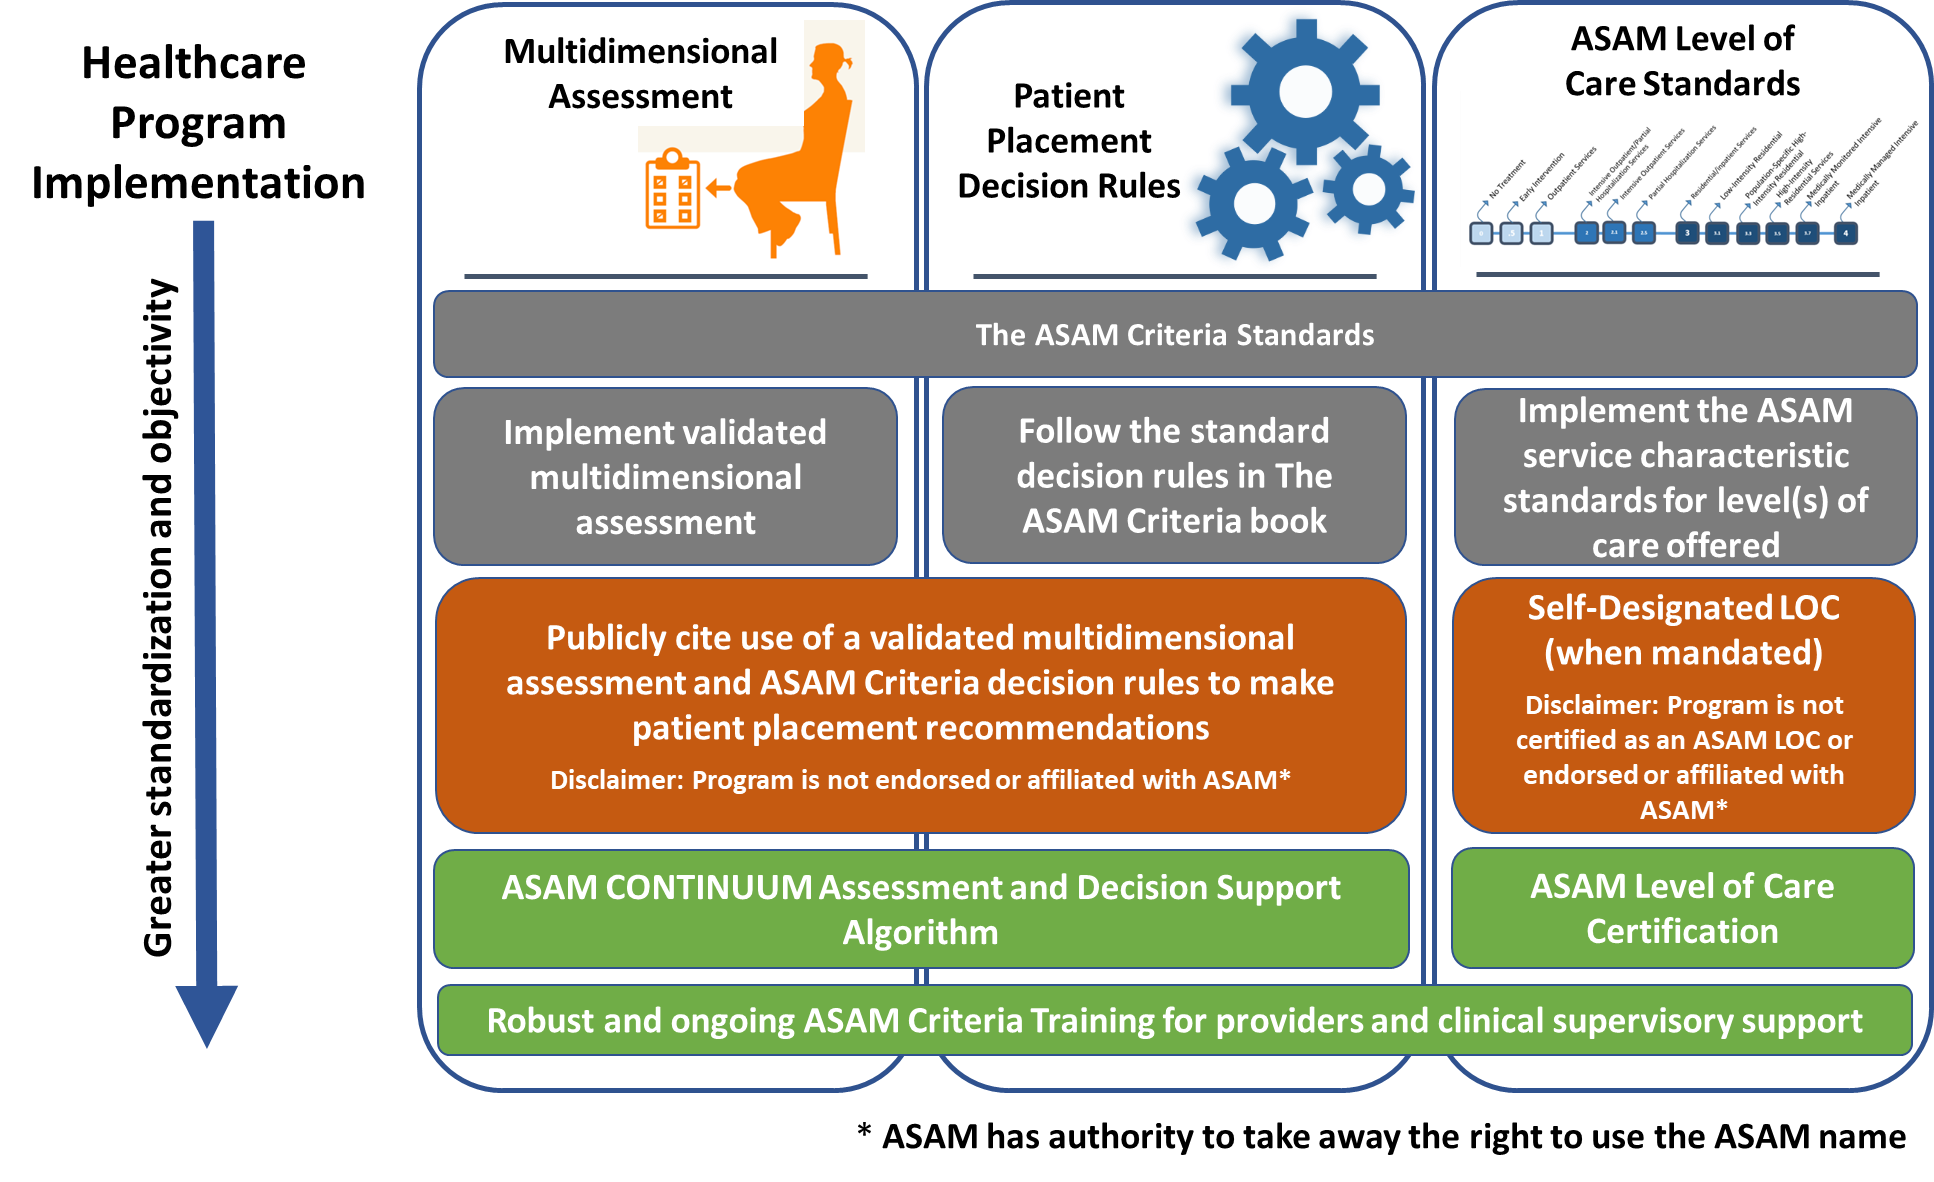 The ASAM Criteria Healthcare Program Implementation